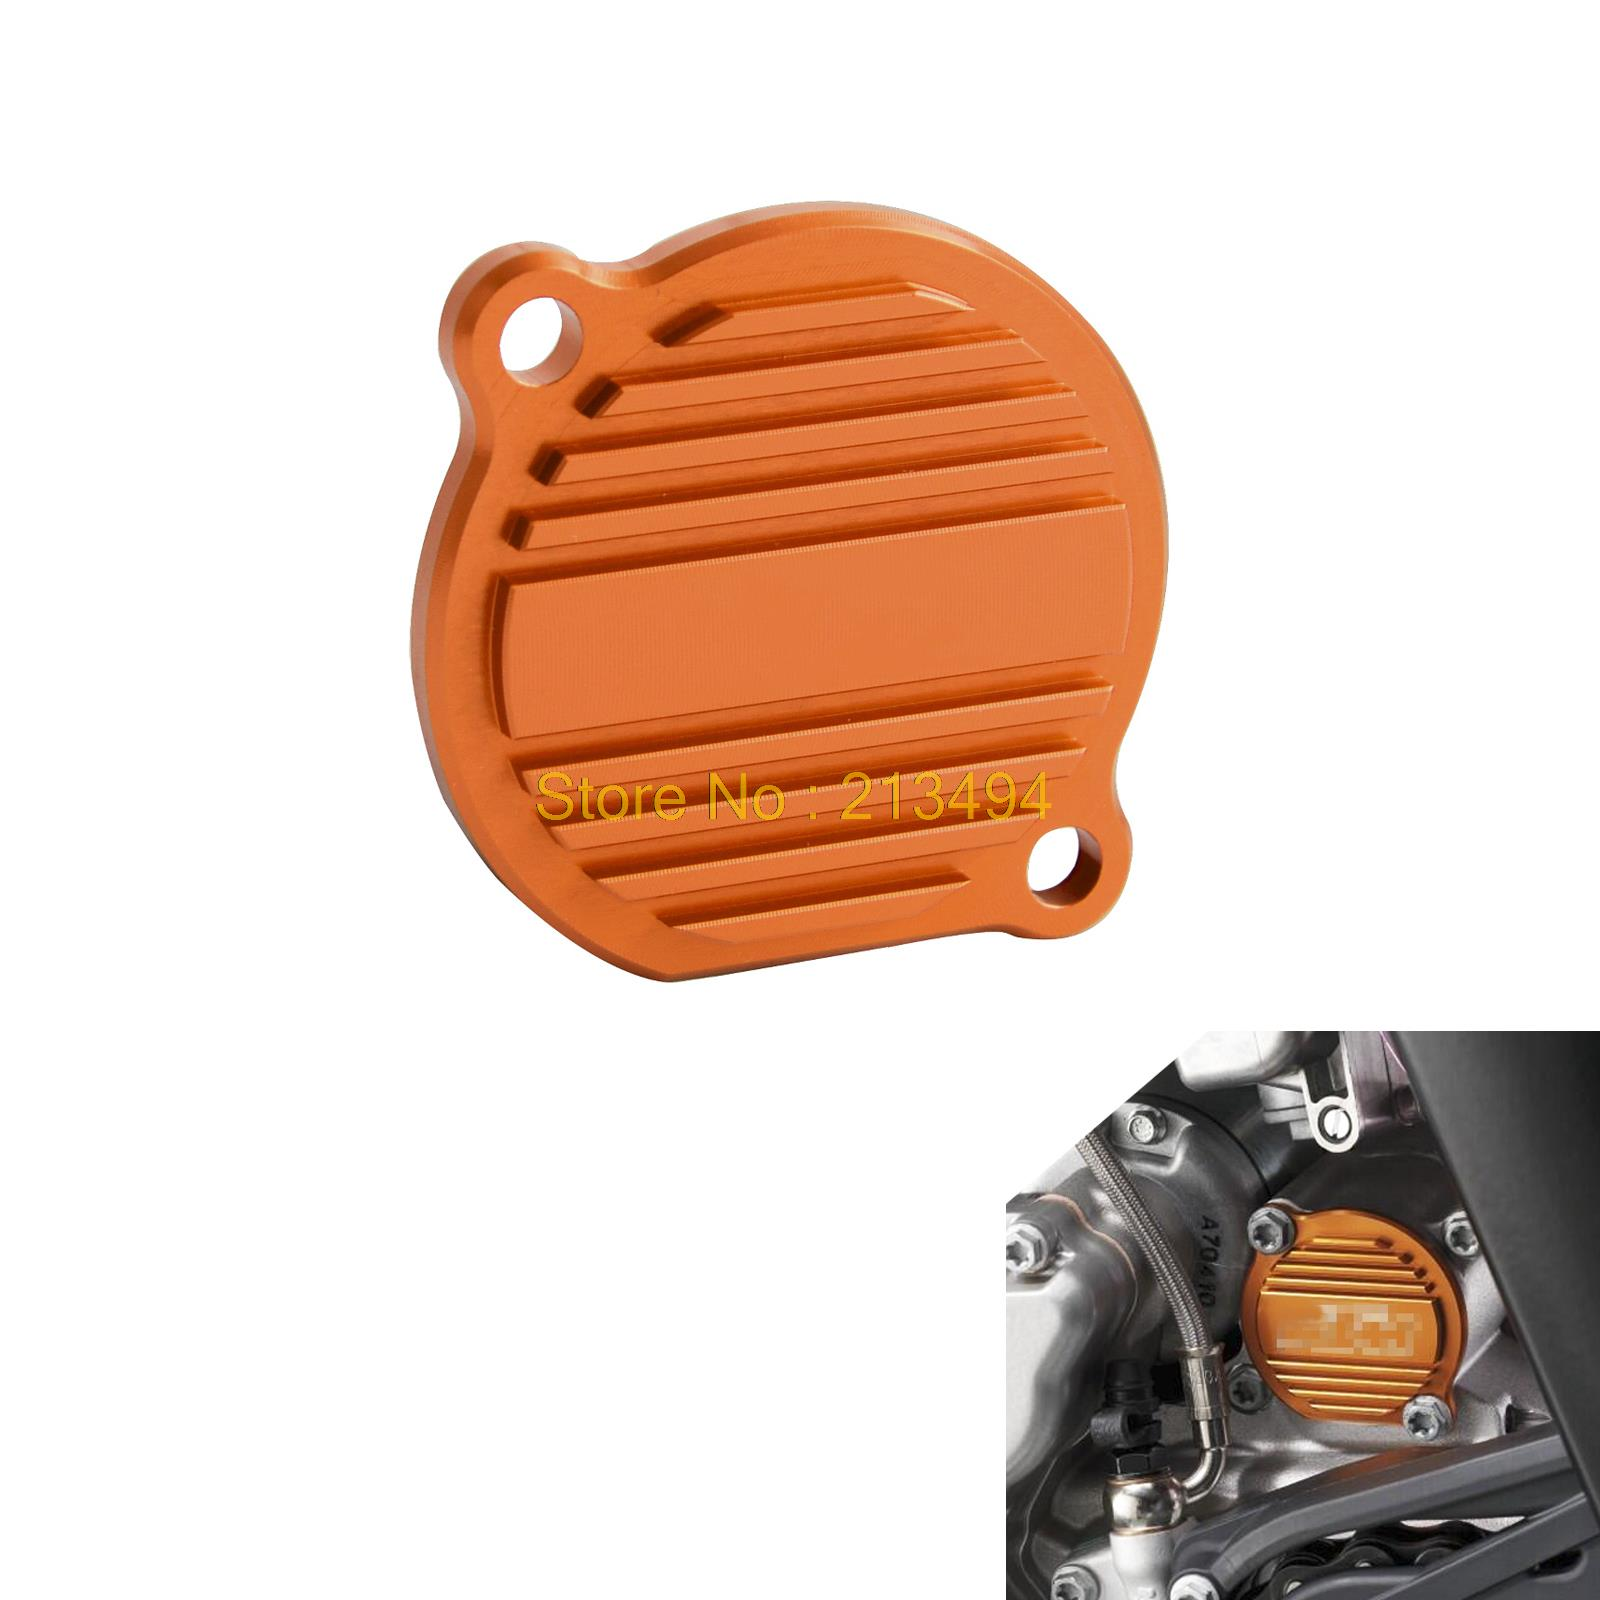 Motorcycle Oil Filter Cover For KTM 250 400 450 520 525 540 950 990 SXF XCF EXC SX XC XCW SMR Adventure Super Duke SUPERMOTO polisport motorcycle led tail light&rear fender stop enduro taillight mx trail supermoto ktm cr exc wrf 250 400 426 450 page 10